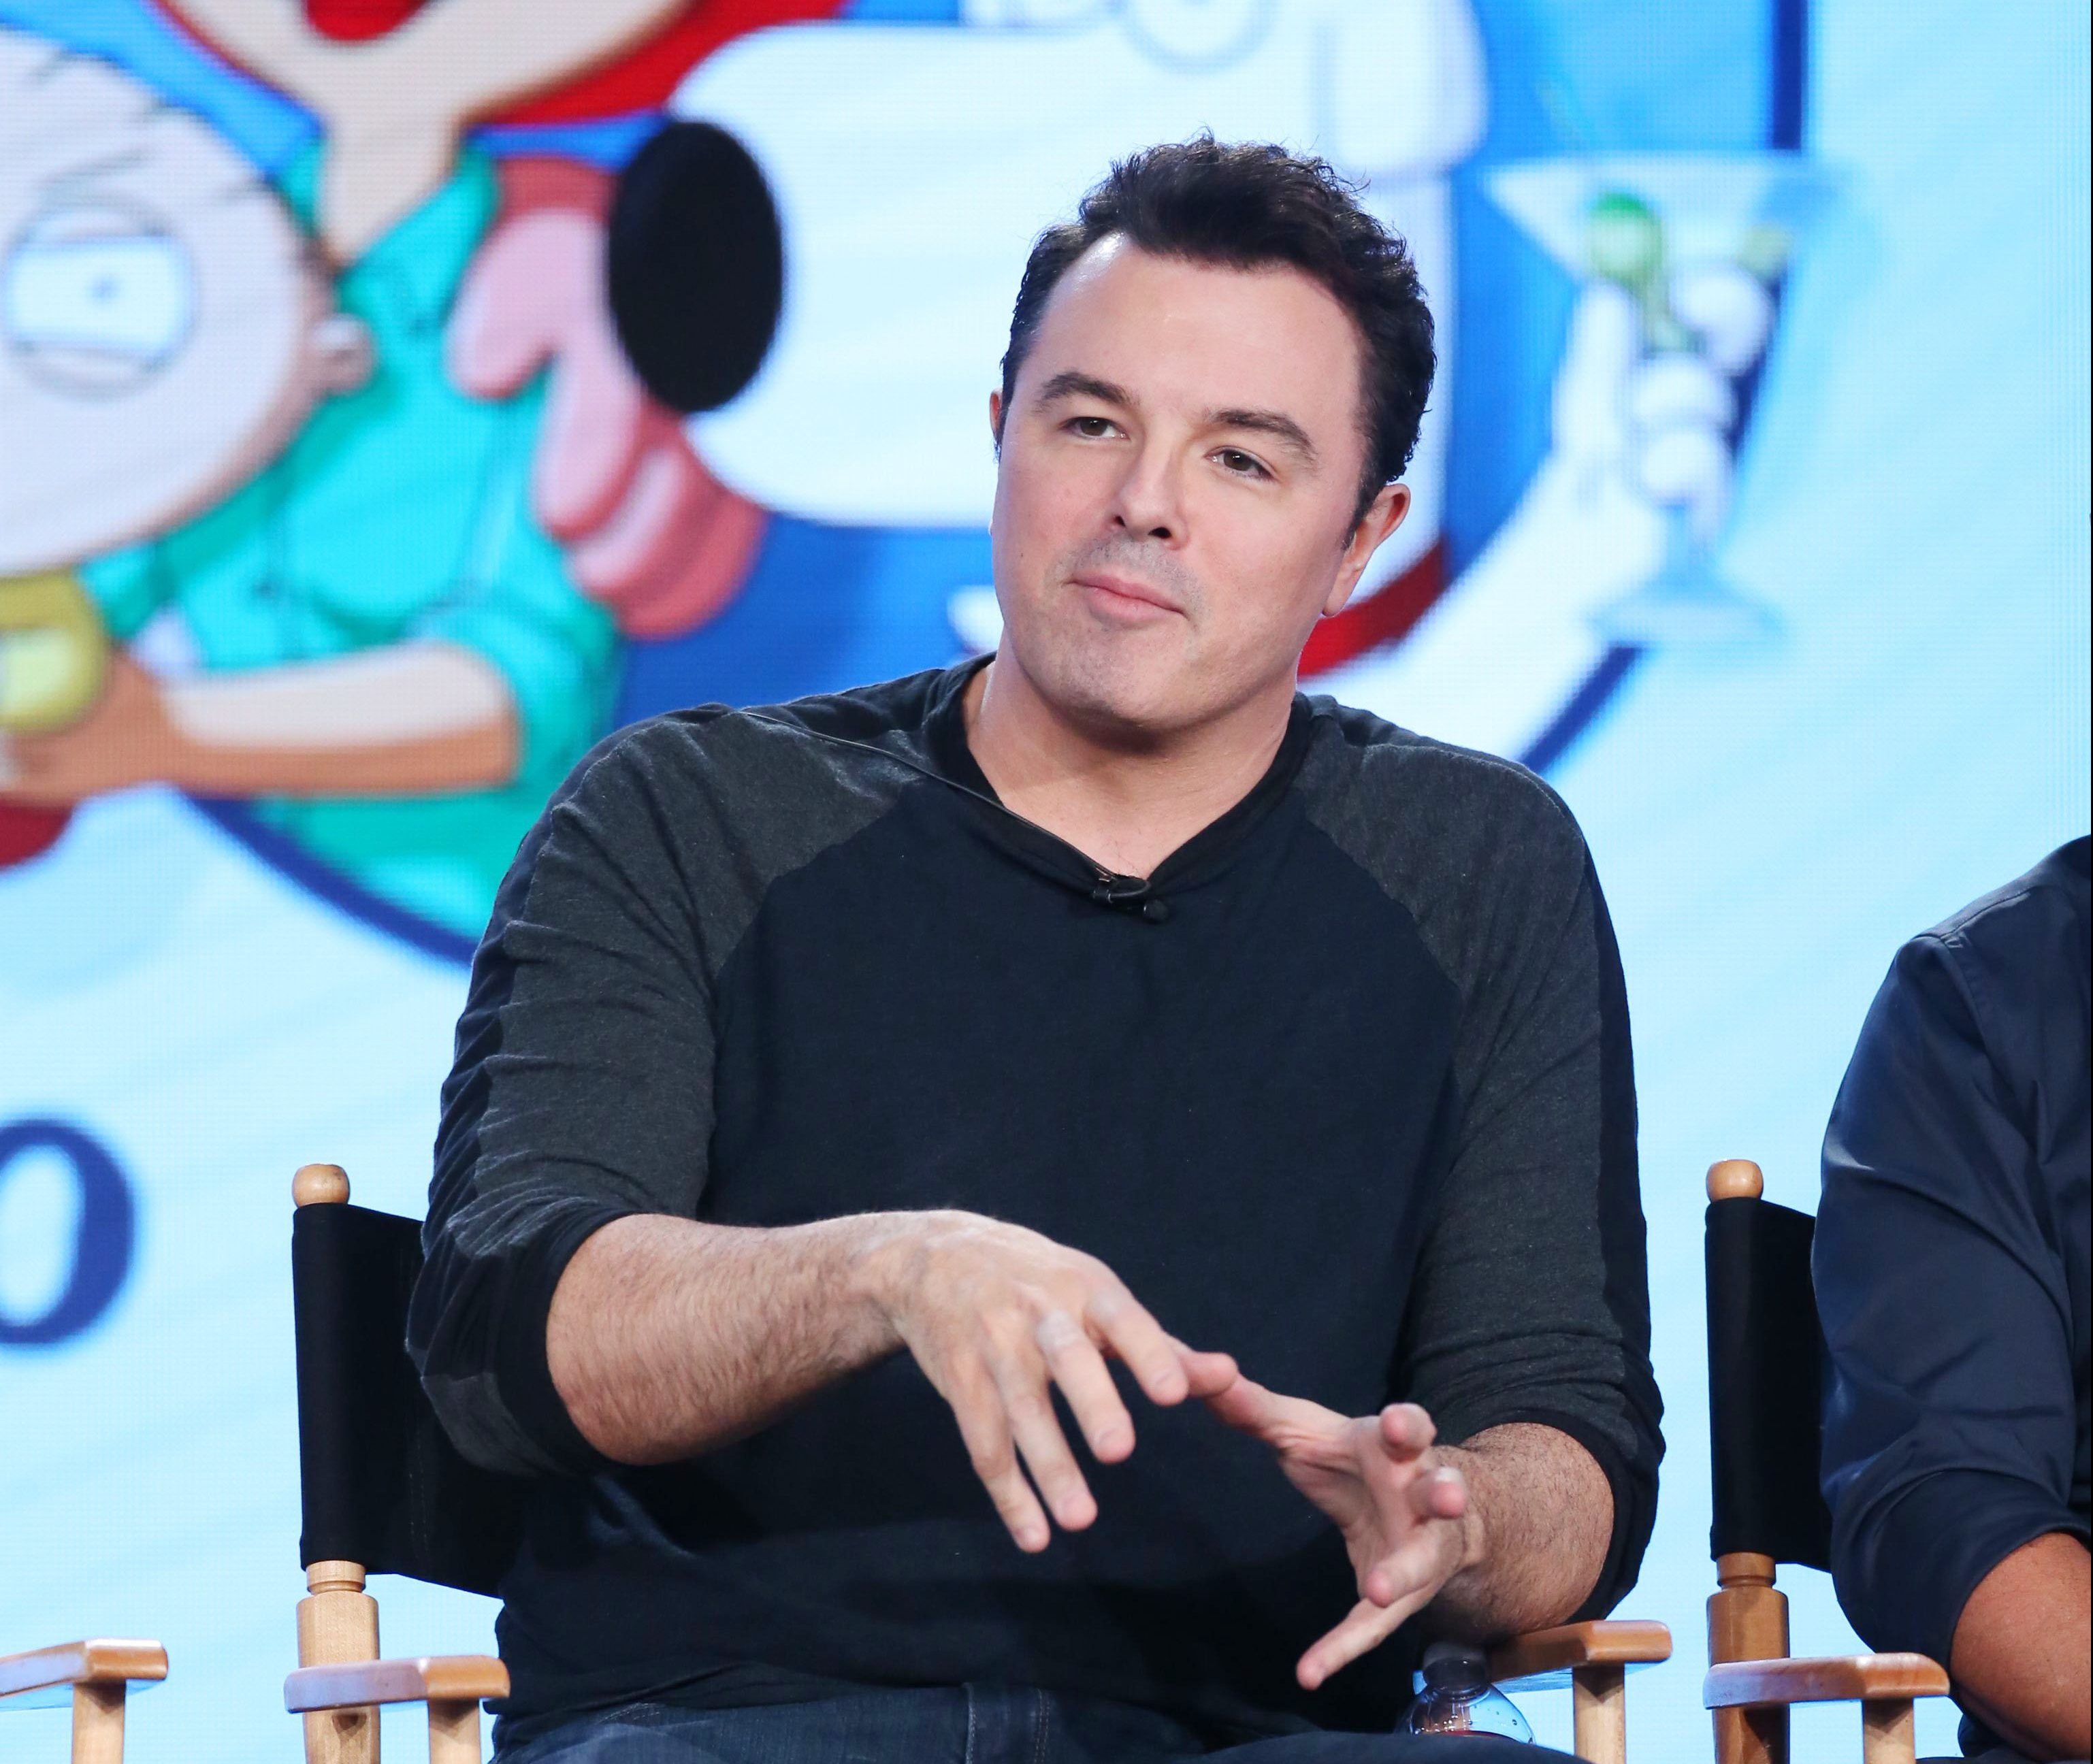 Family Guy producers finally explain origin of 2005 Kevin Spacey joke